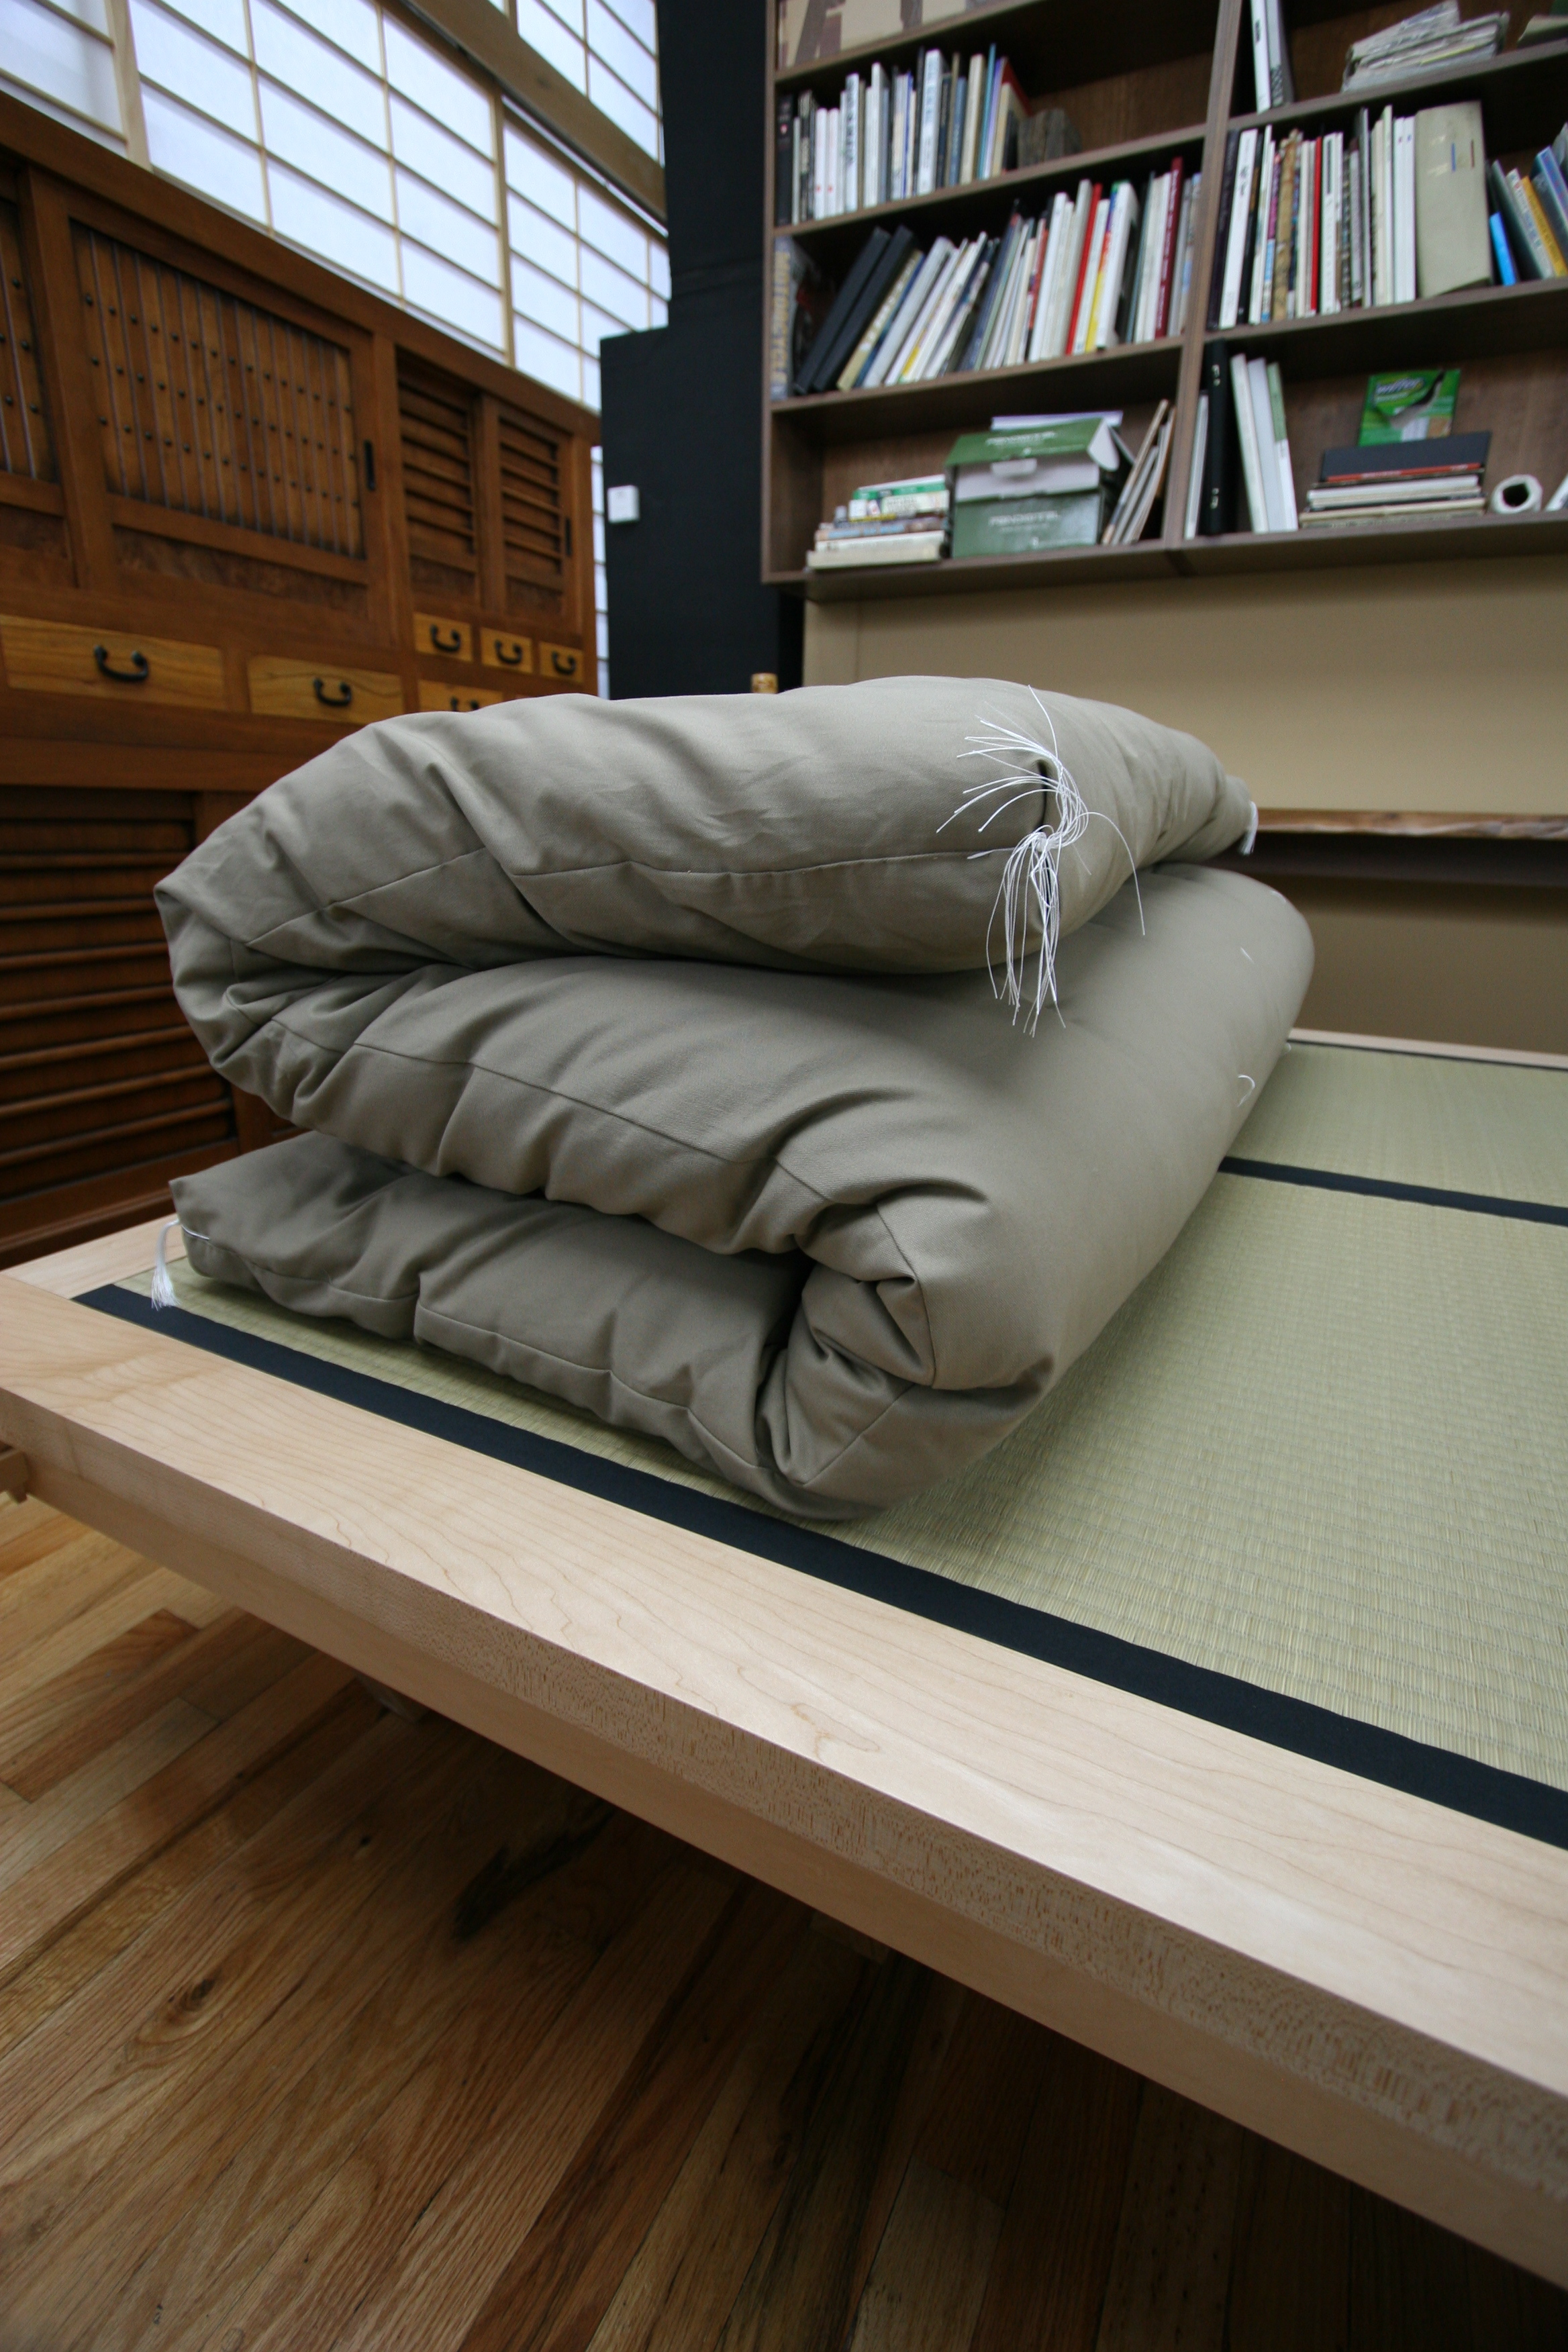 Japanese Futon Nyc Home Decor